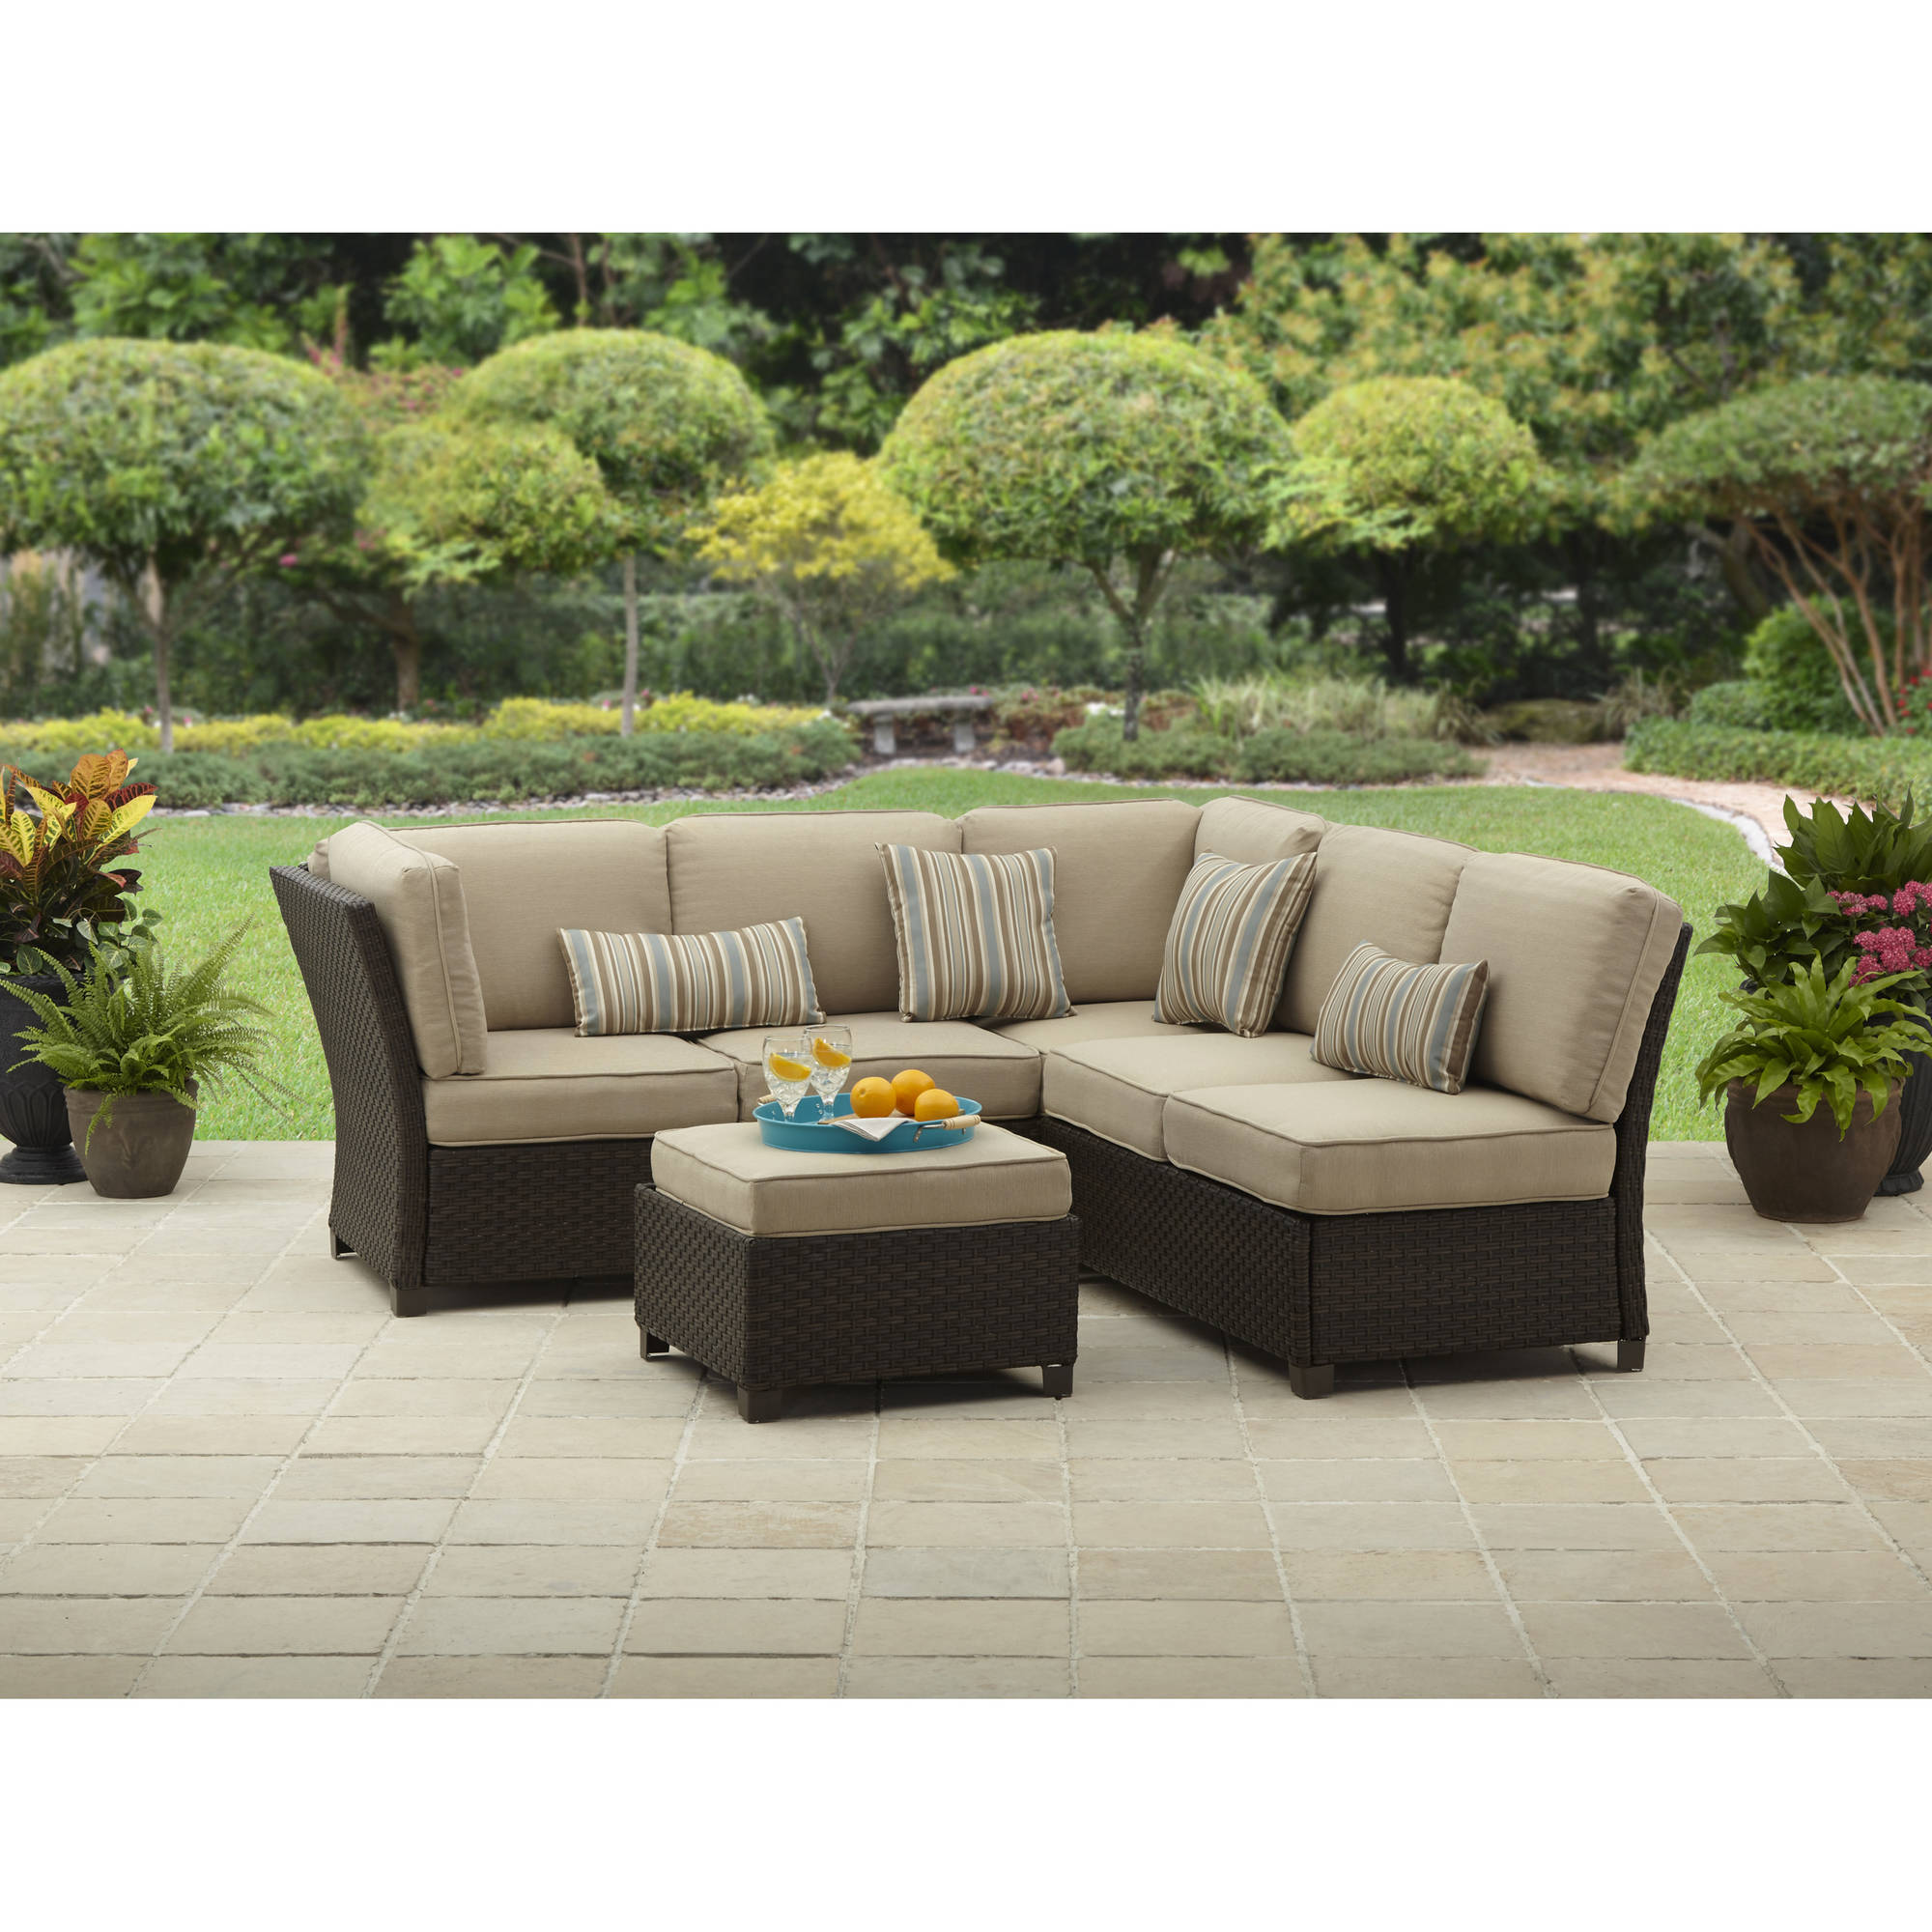 Better Homes Gardens Colebrook 3 Piece Outdoor Chat Set Seats 2